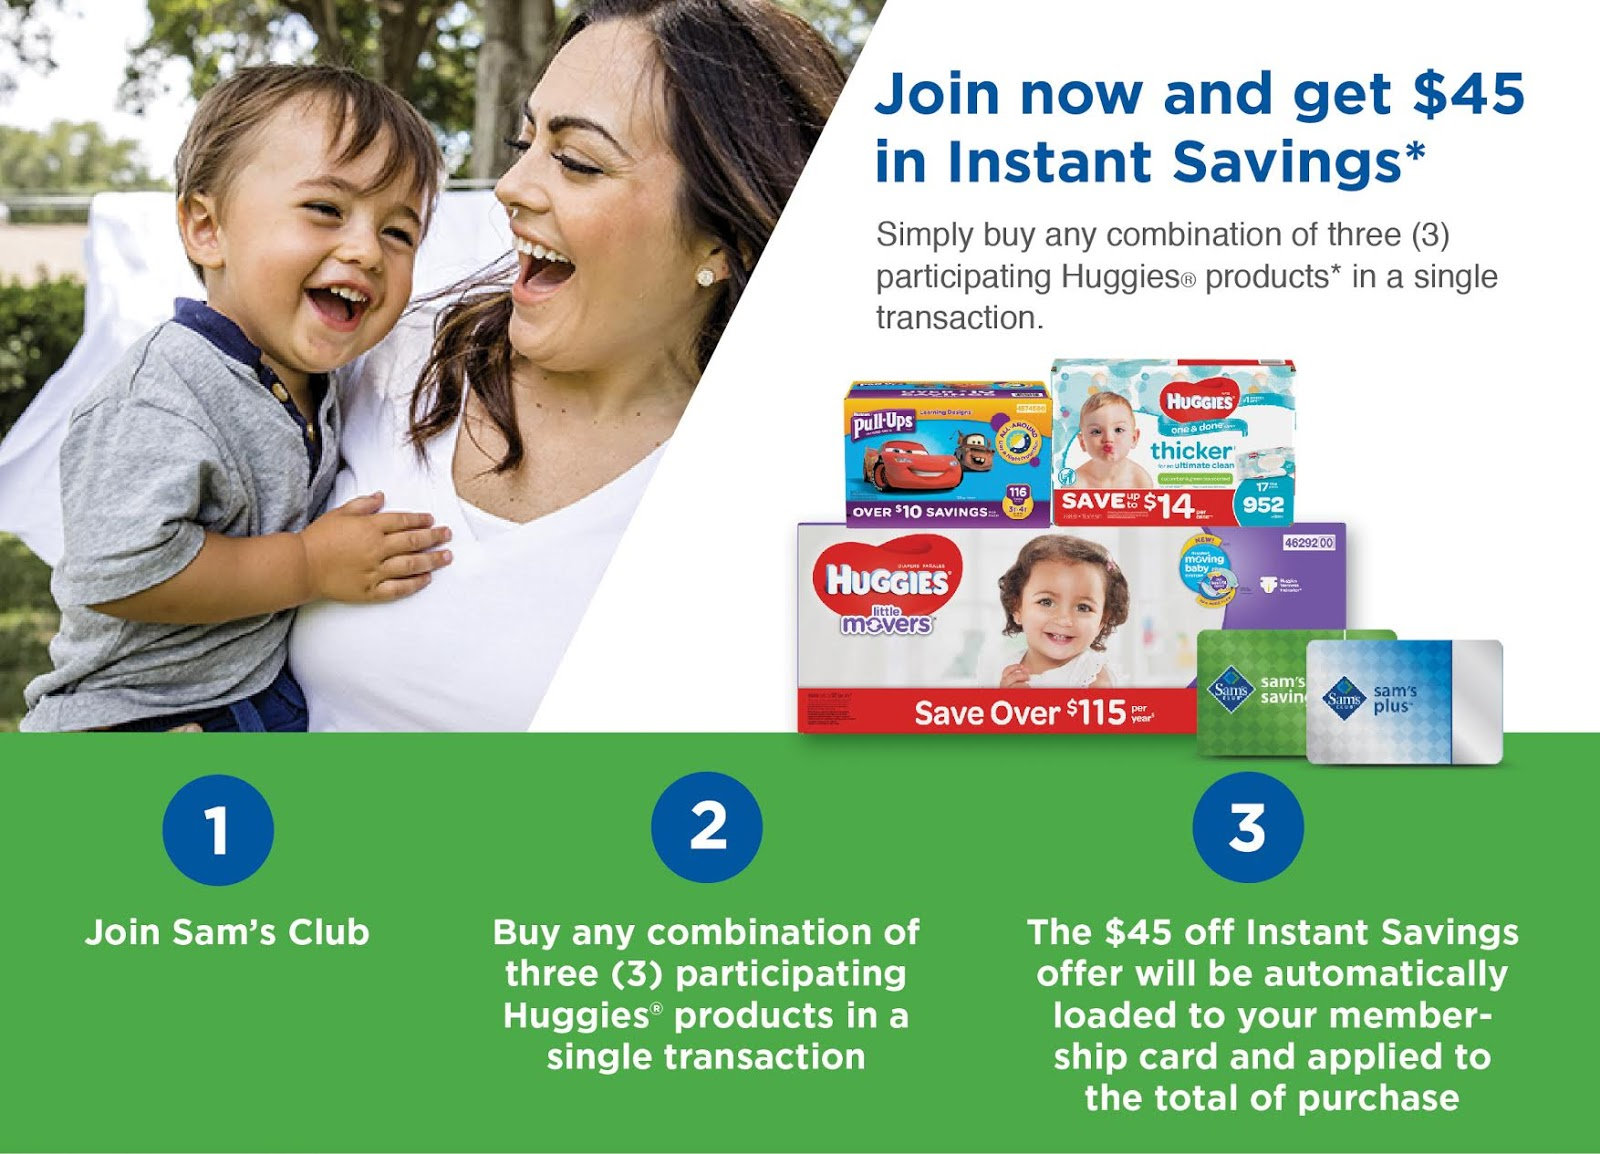 Instant Savings with Sam's Club and Huggies